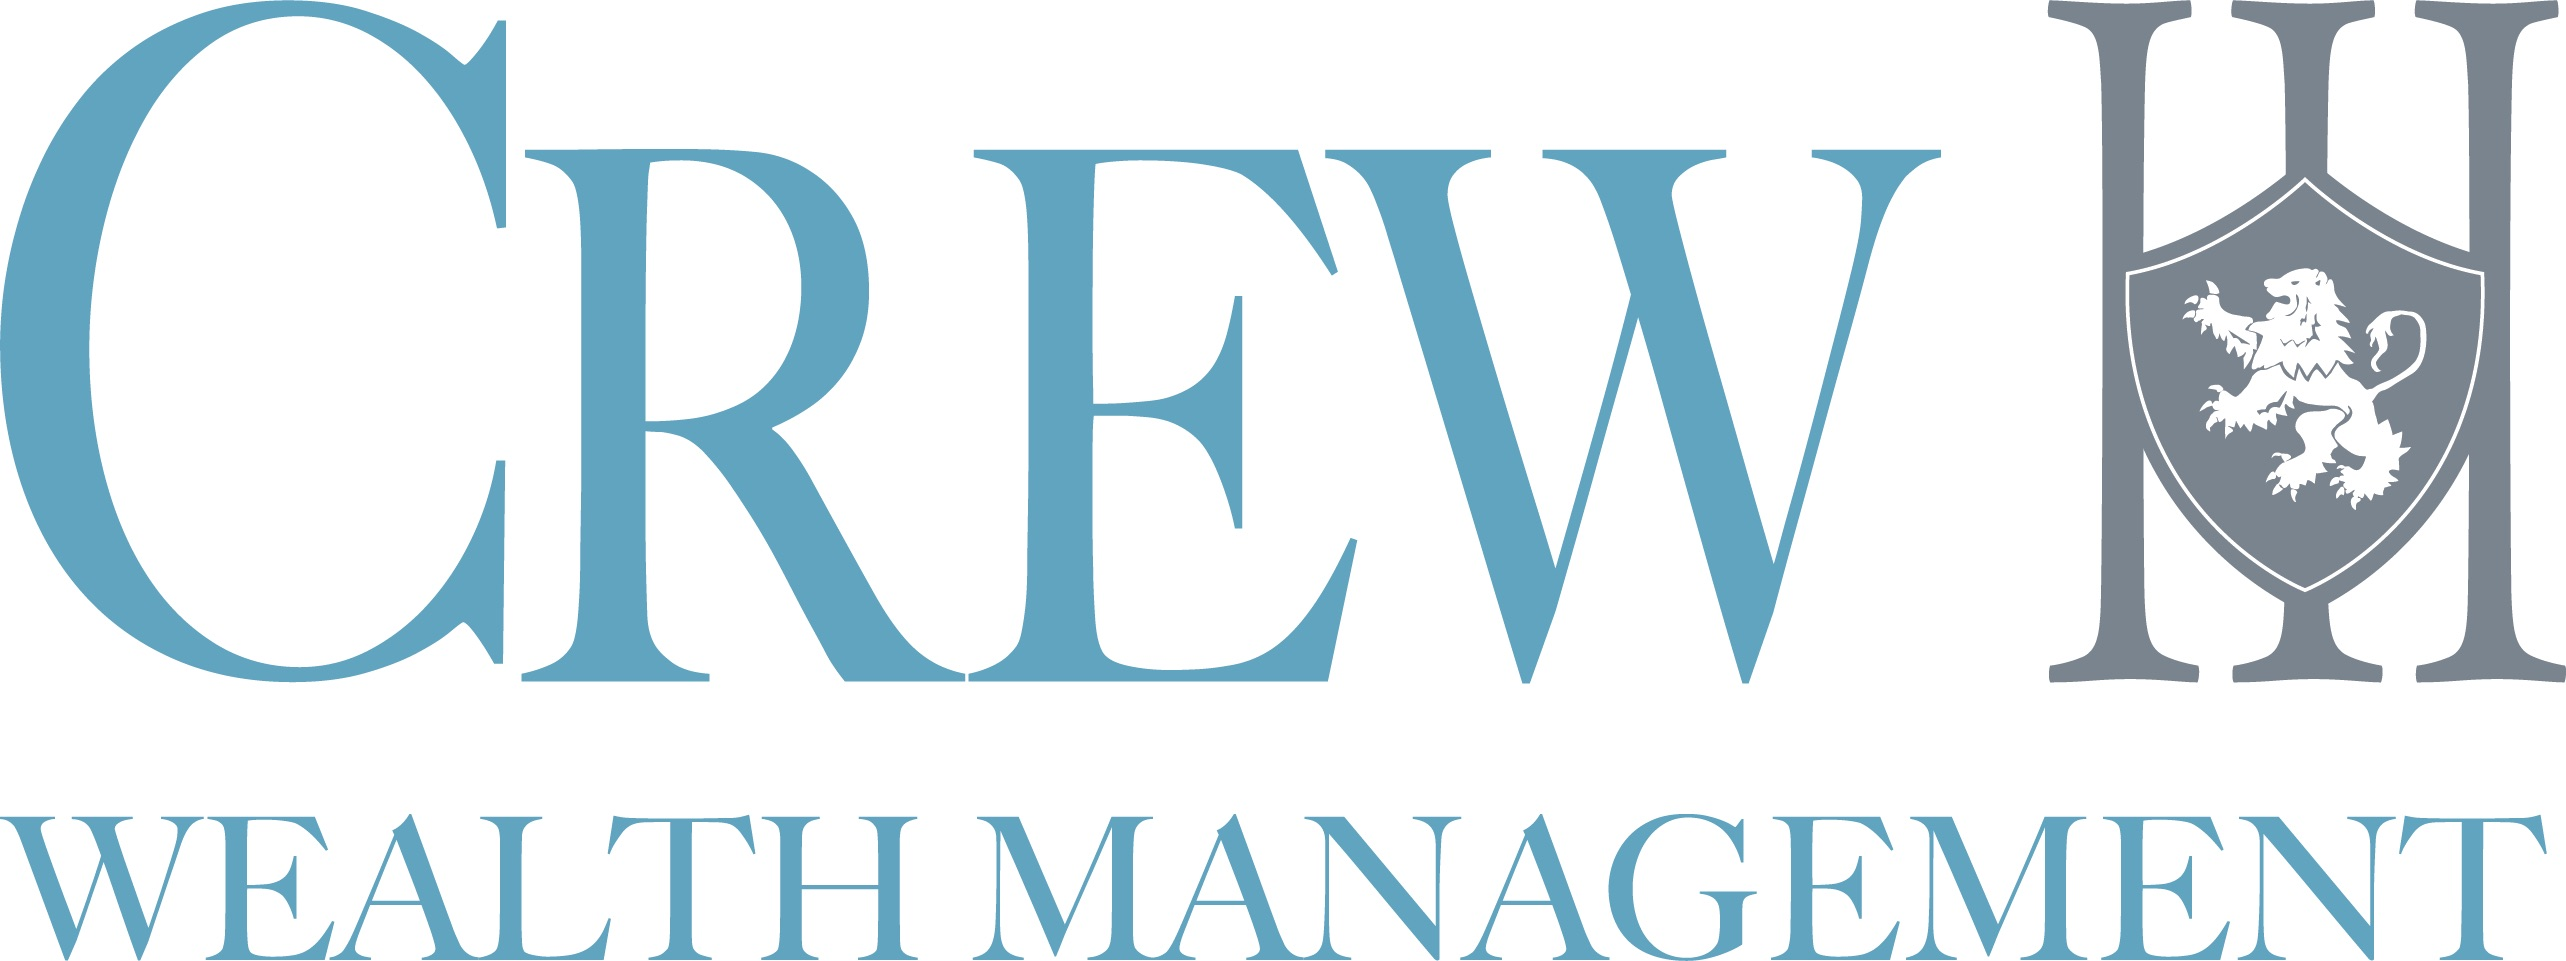 Crew Wealth Management